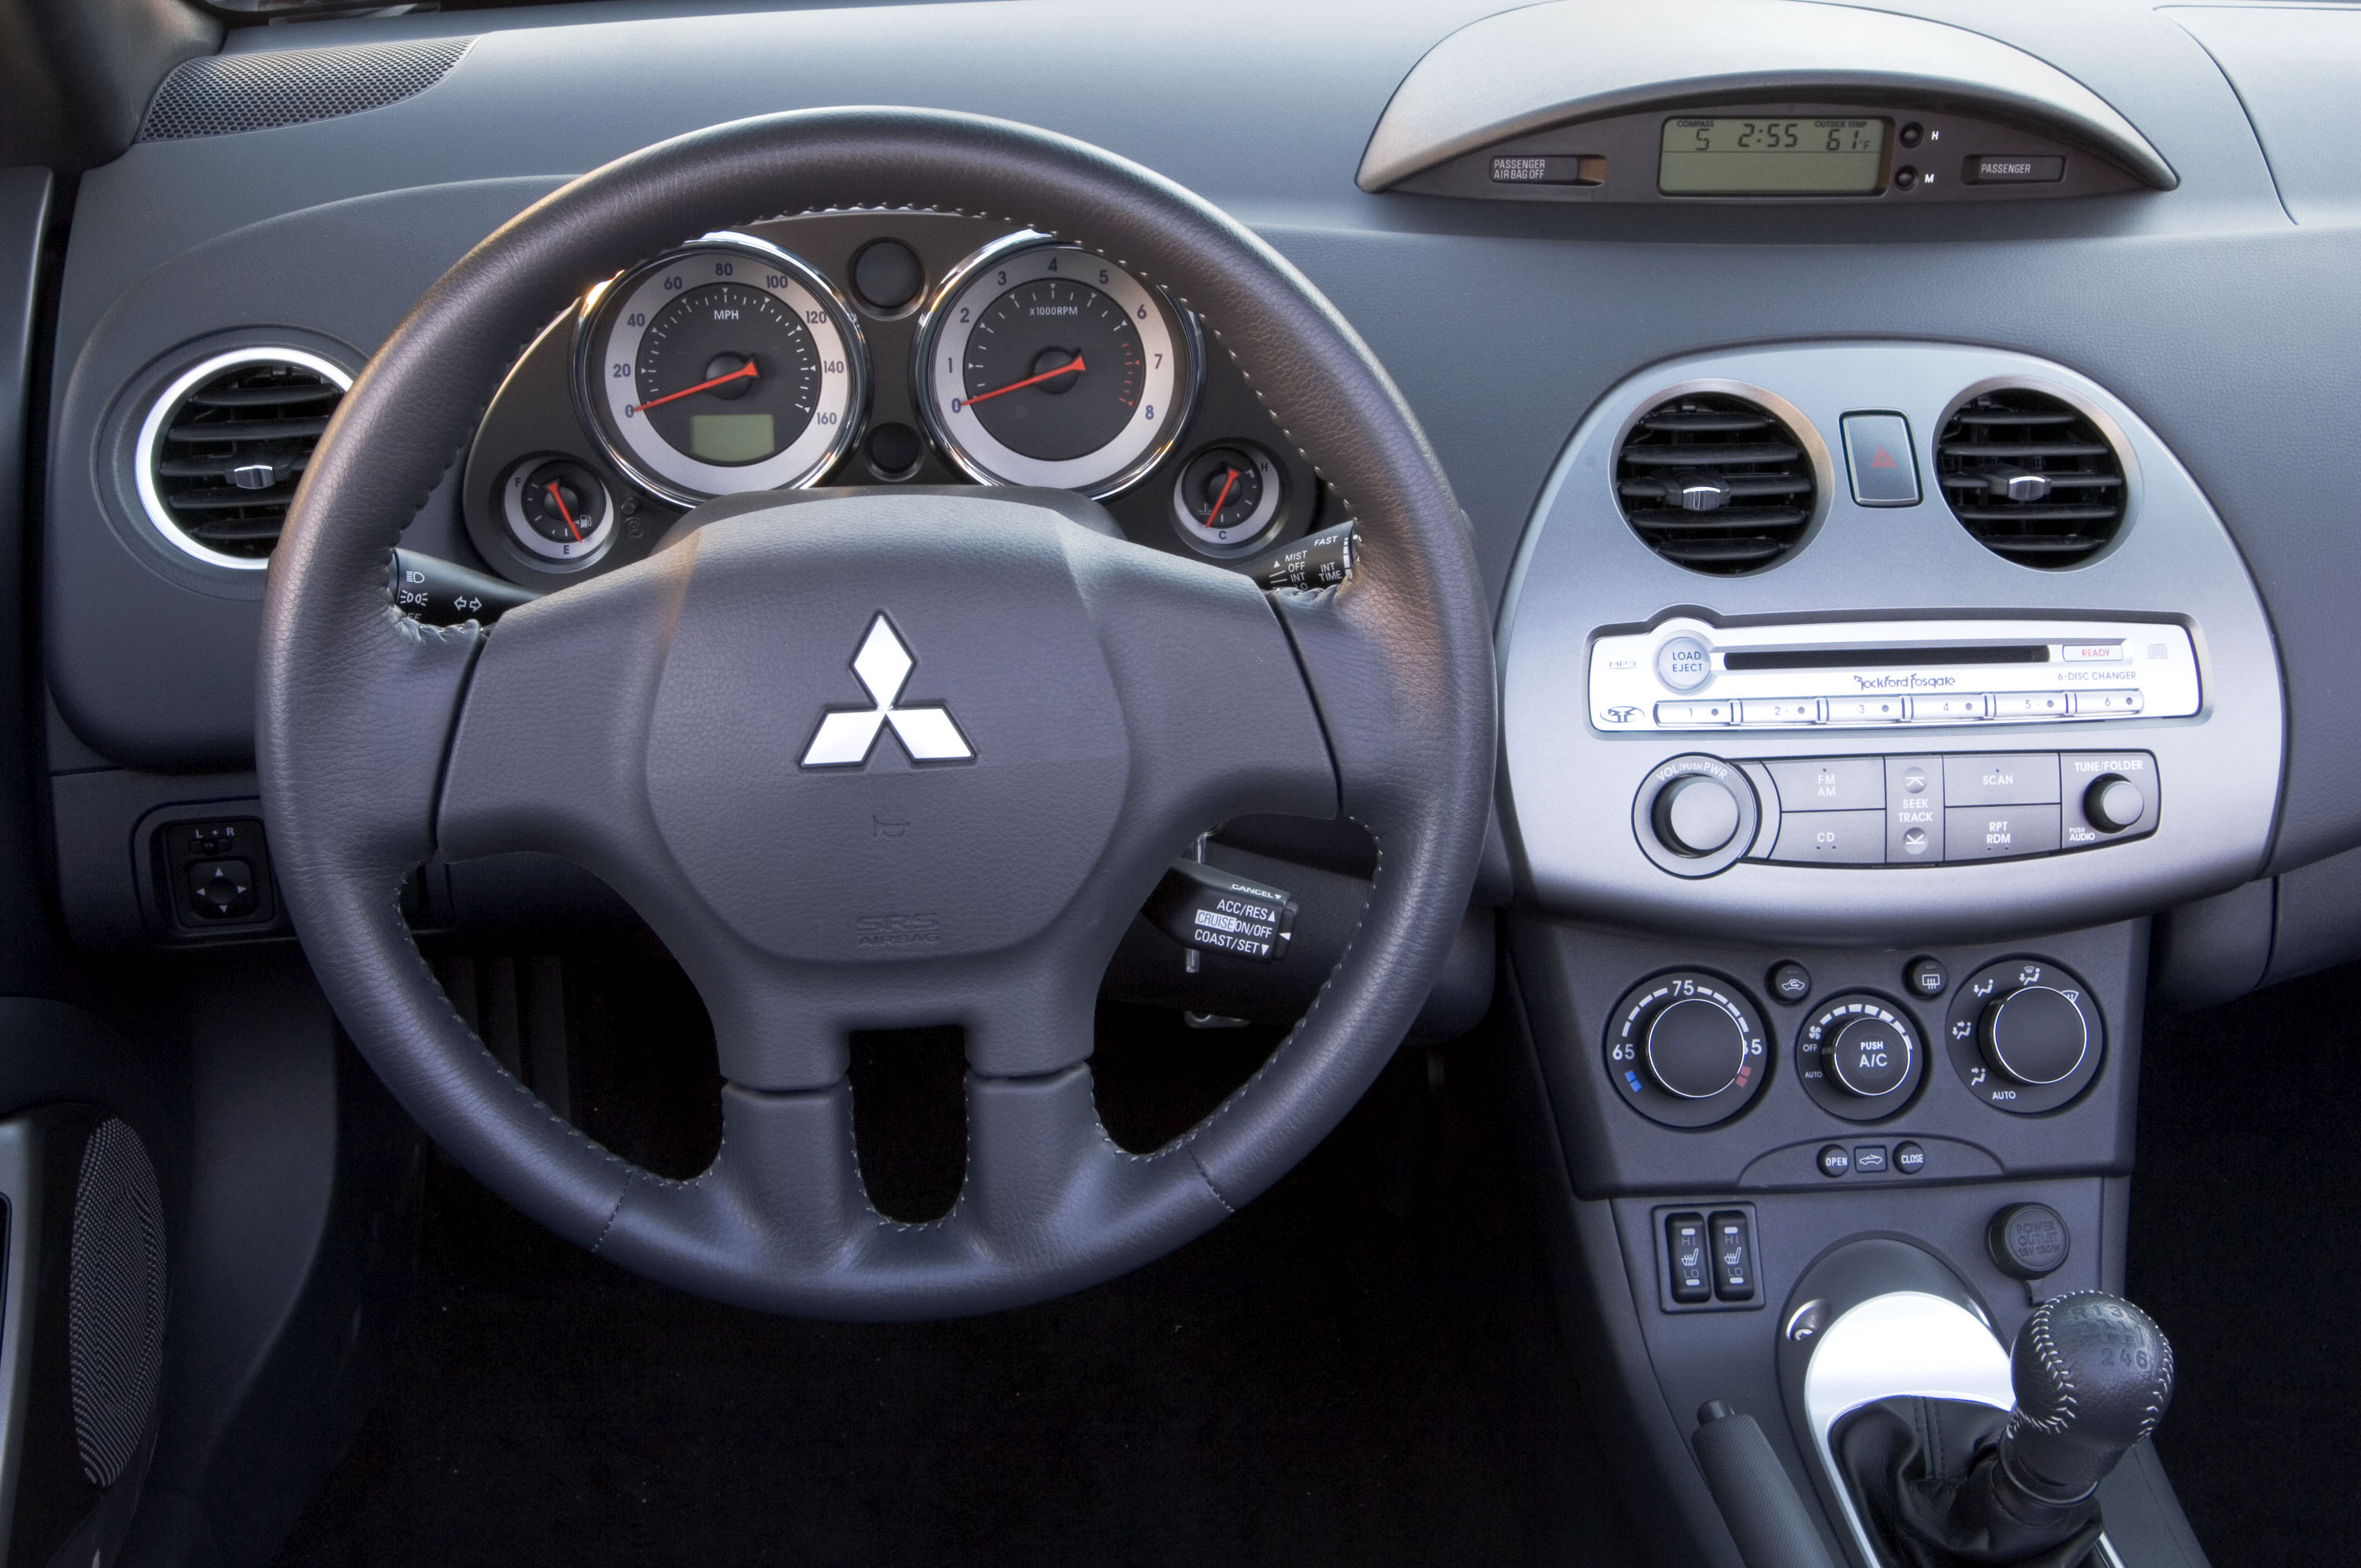 2008 Mitsubishi Eclipse Spyder Hd Pictures Gt Interior Thumbnail Photo 30683